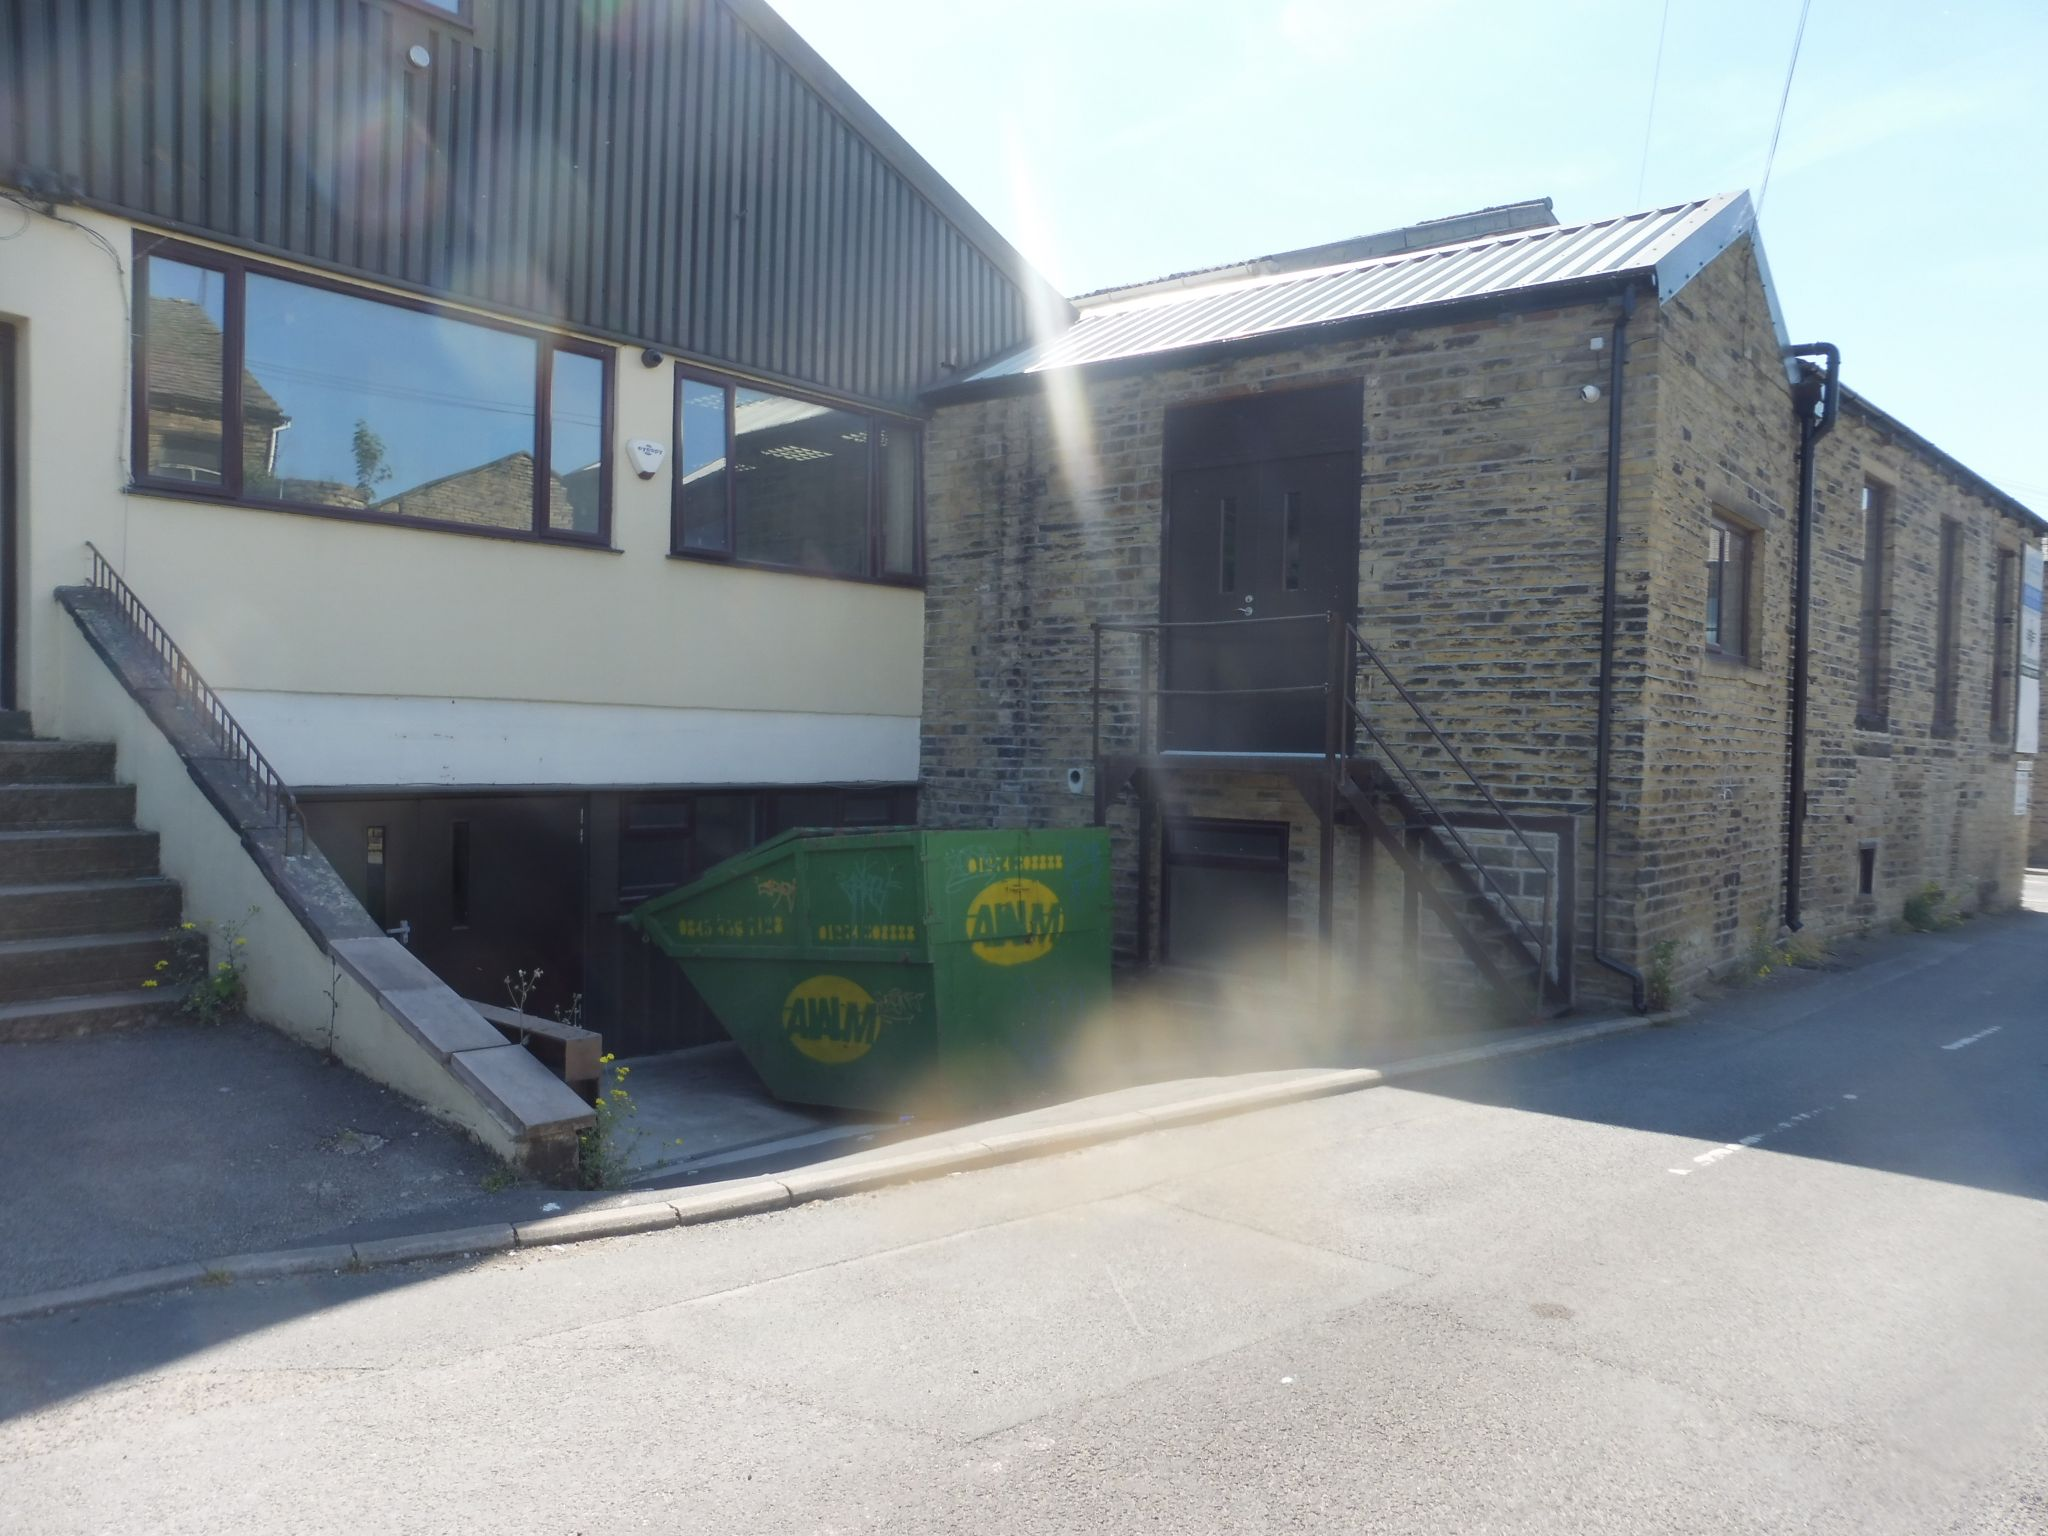 Commercial Property To Let in Brighouse - Photograph 2.